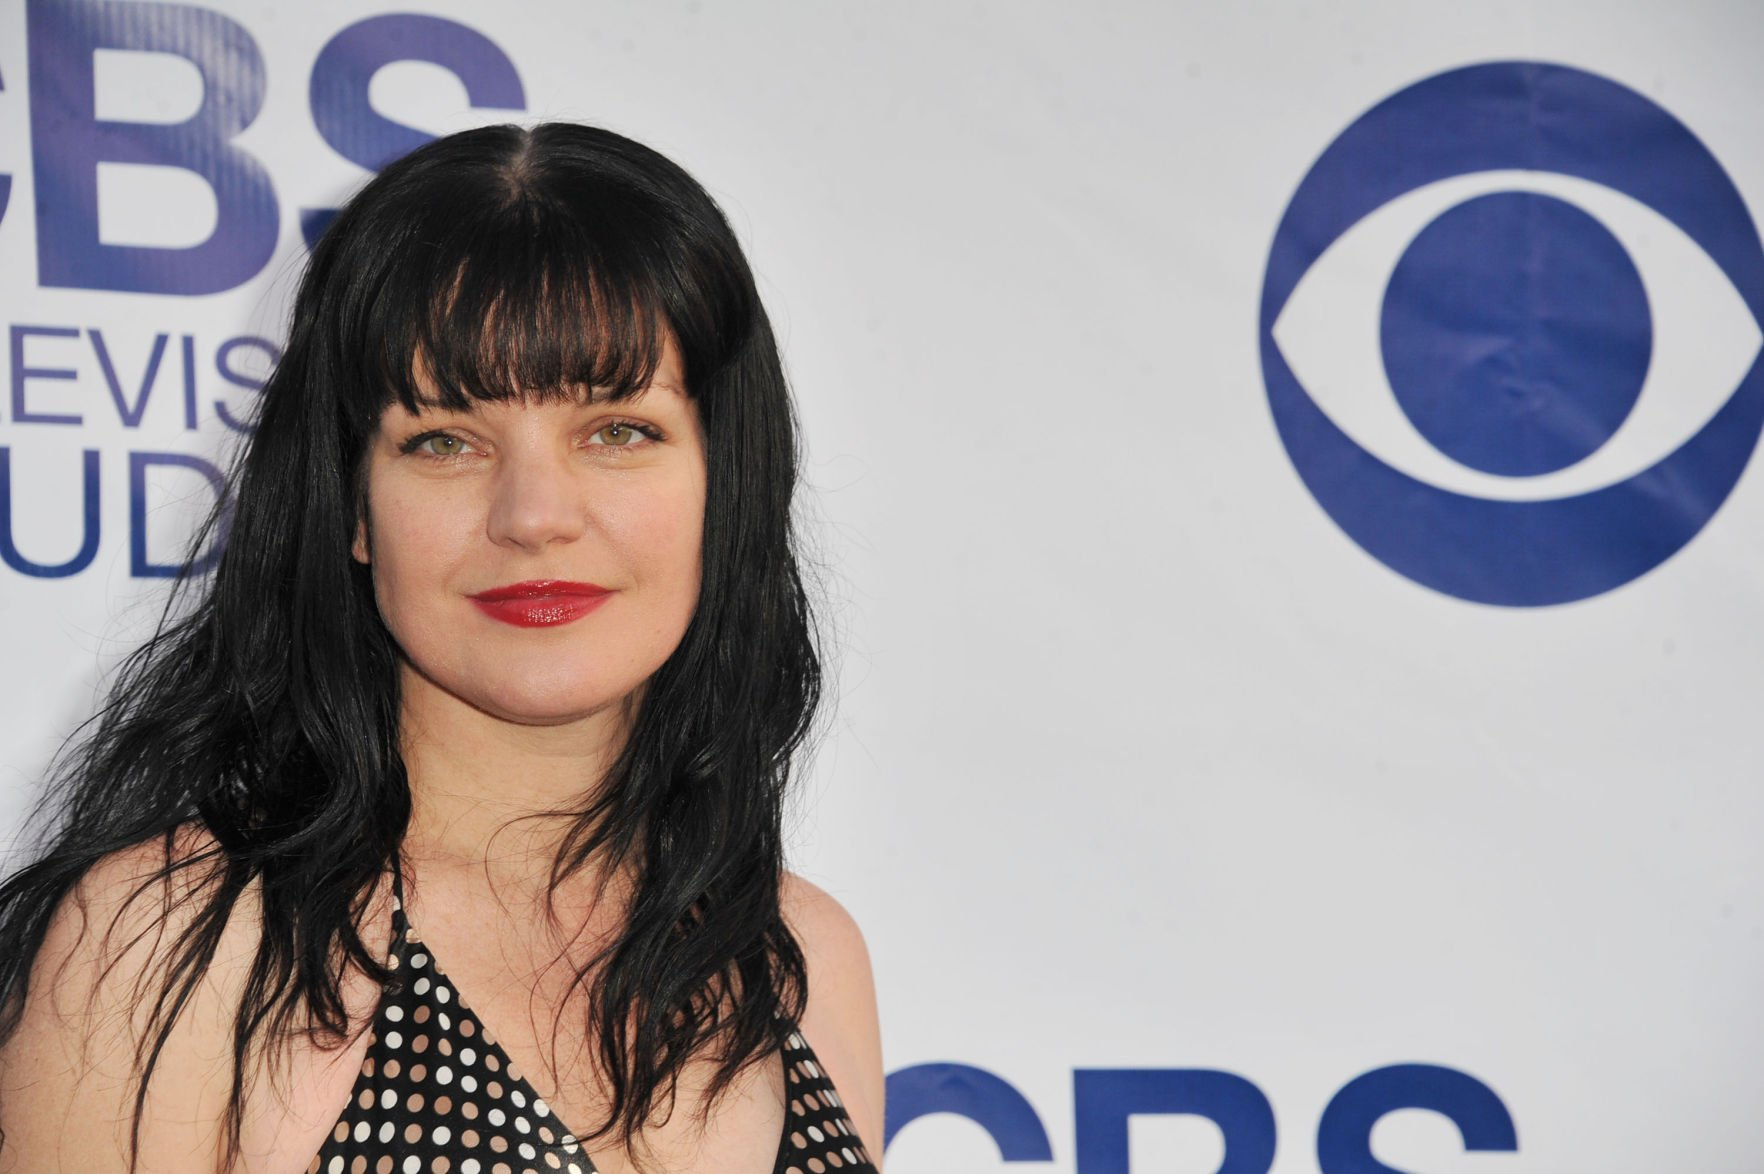 NCIS bosses, CBS comment on Pauley Perrette's departure at season's end